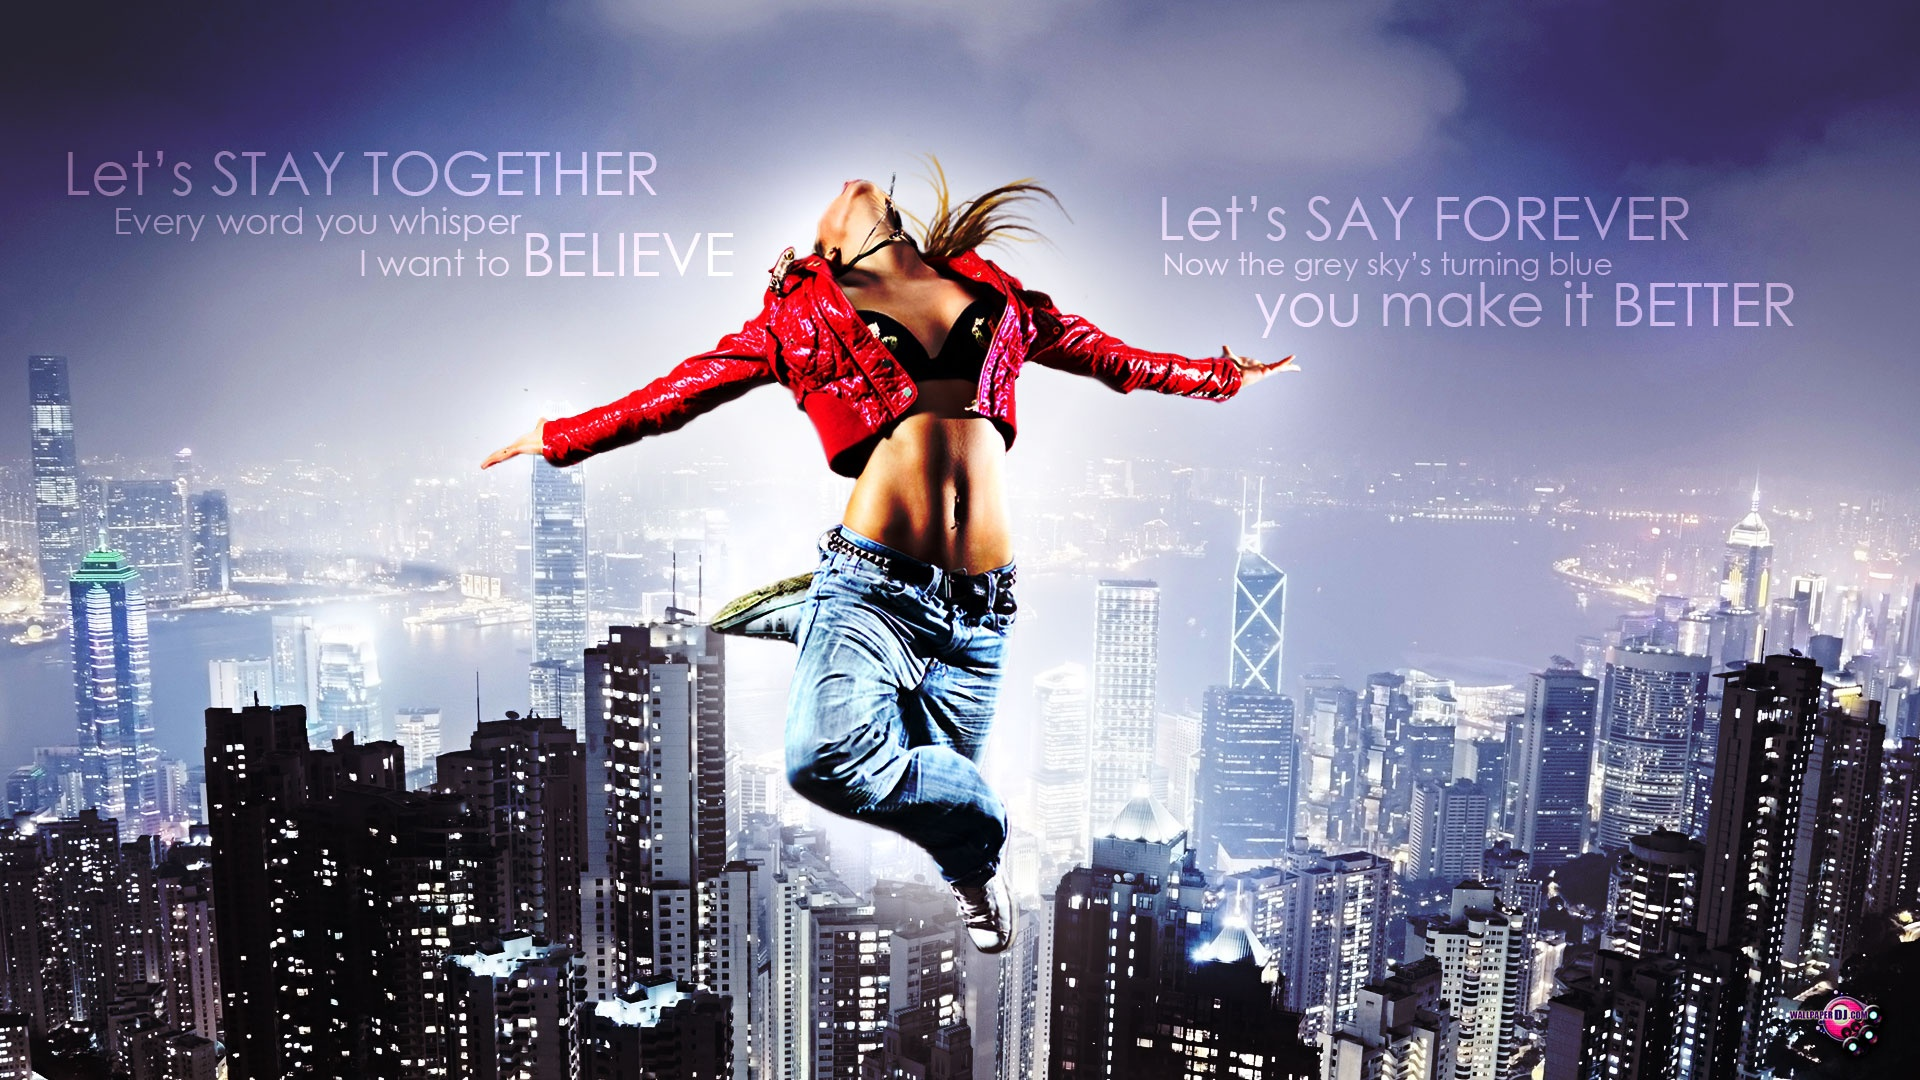 Dj Girl Hd Wallpapers 1920x1080 I Want To Believe Wallpaper Music And Dance